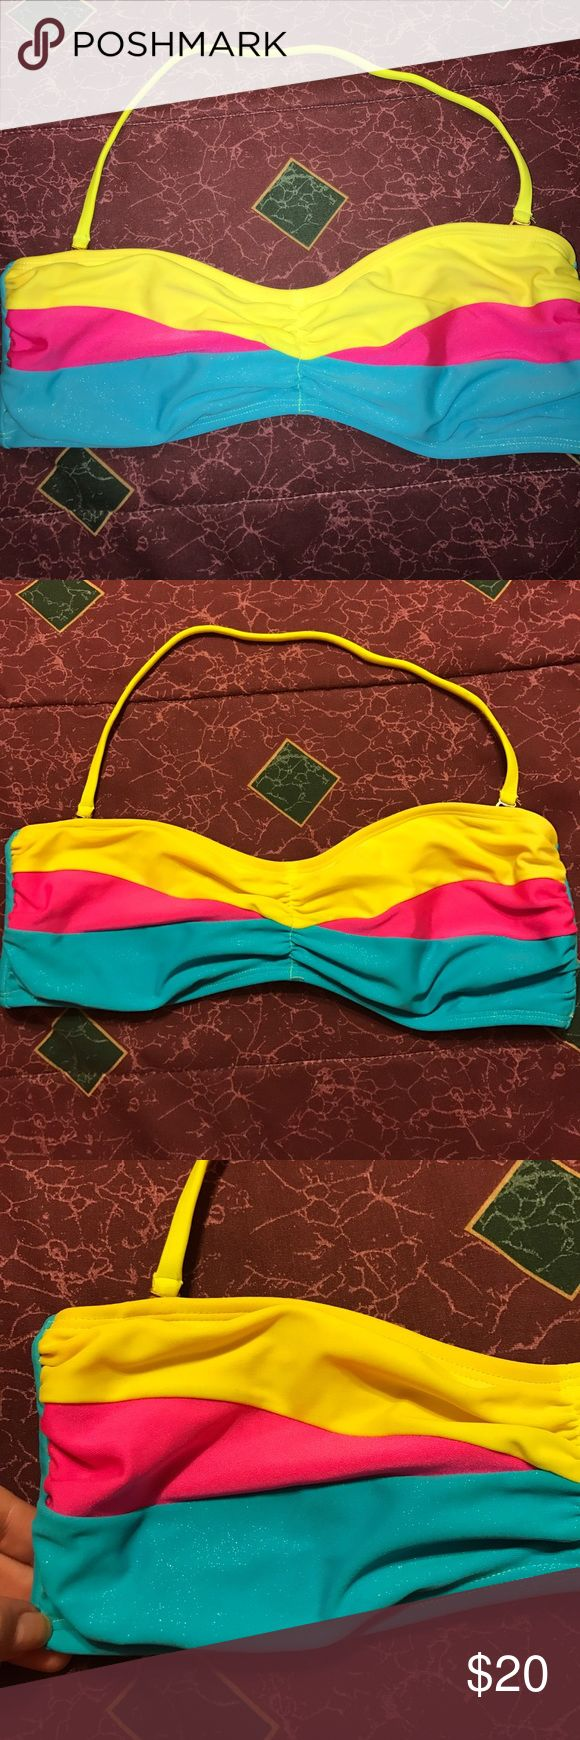 Fun multicolored bandeau bikini top Yellow, pink, and sparkly sky blue bikini top with removable straps, slightly worn but in great condition, does not include pad inserts (***tag is missing but I assume it's a medium) Xhilaration Swim Bikinis